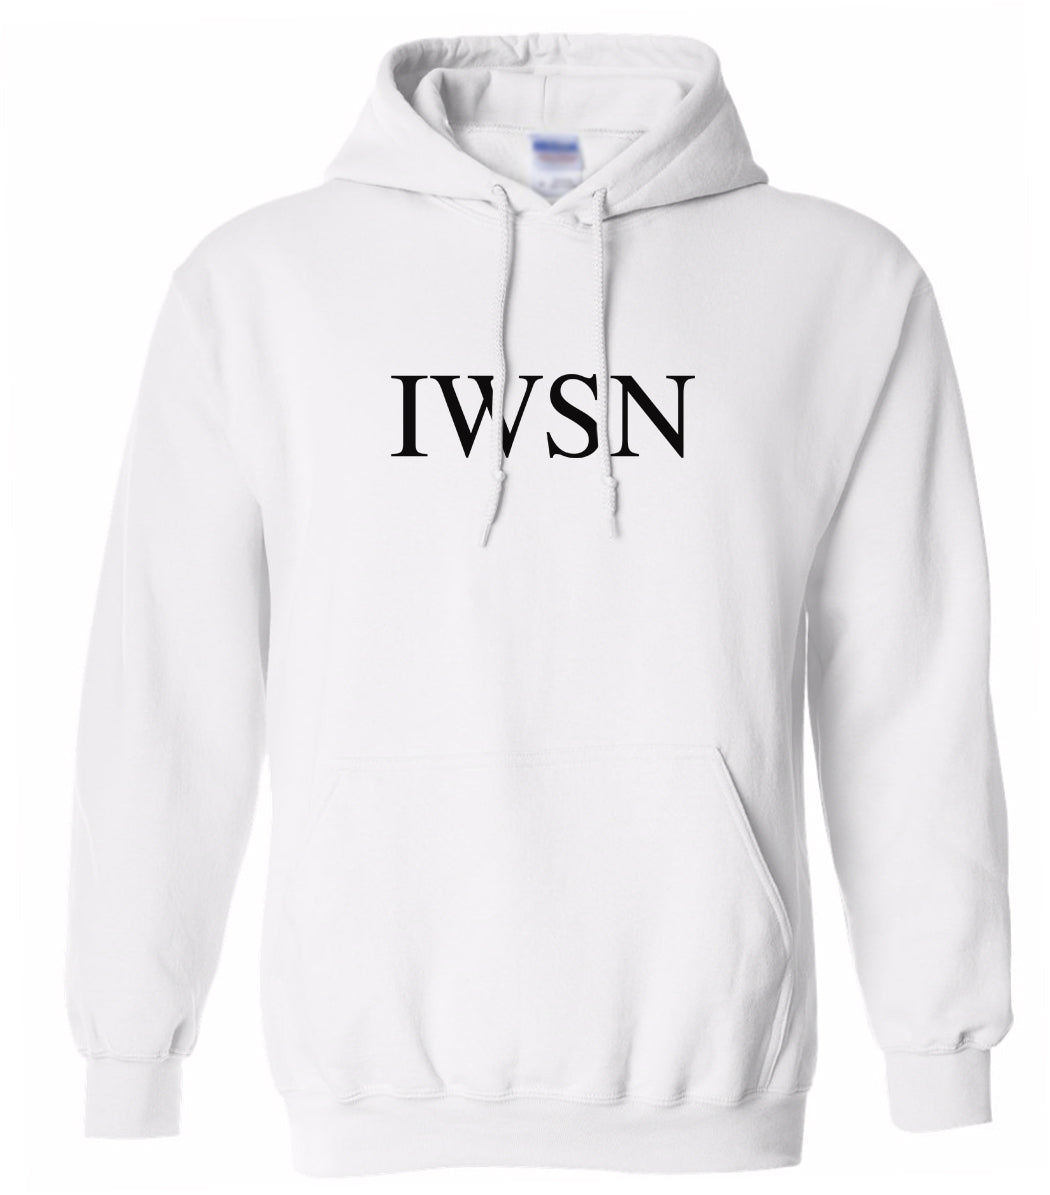 white IWSN hooded sweatshirt for women